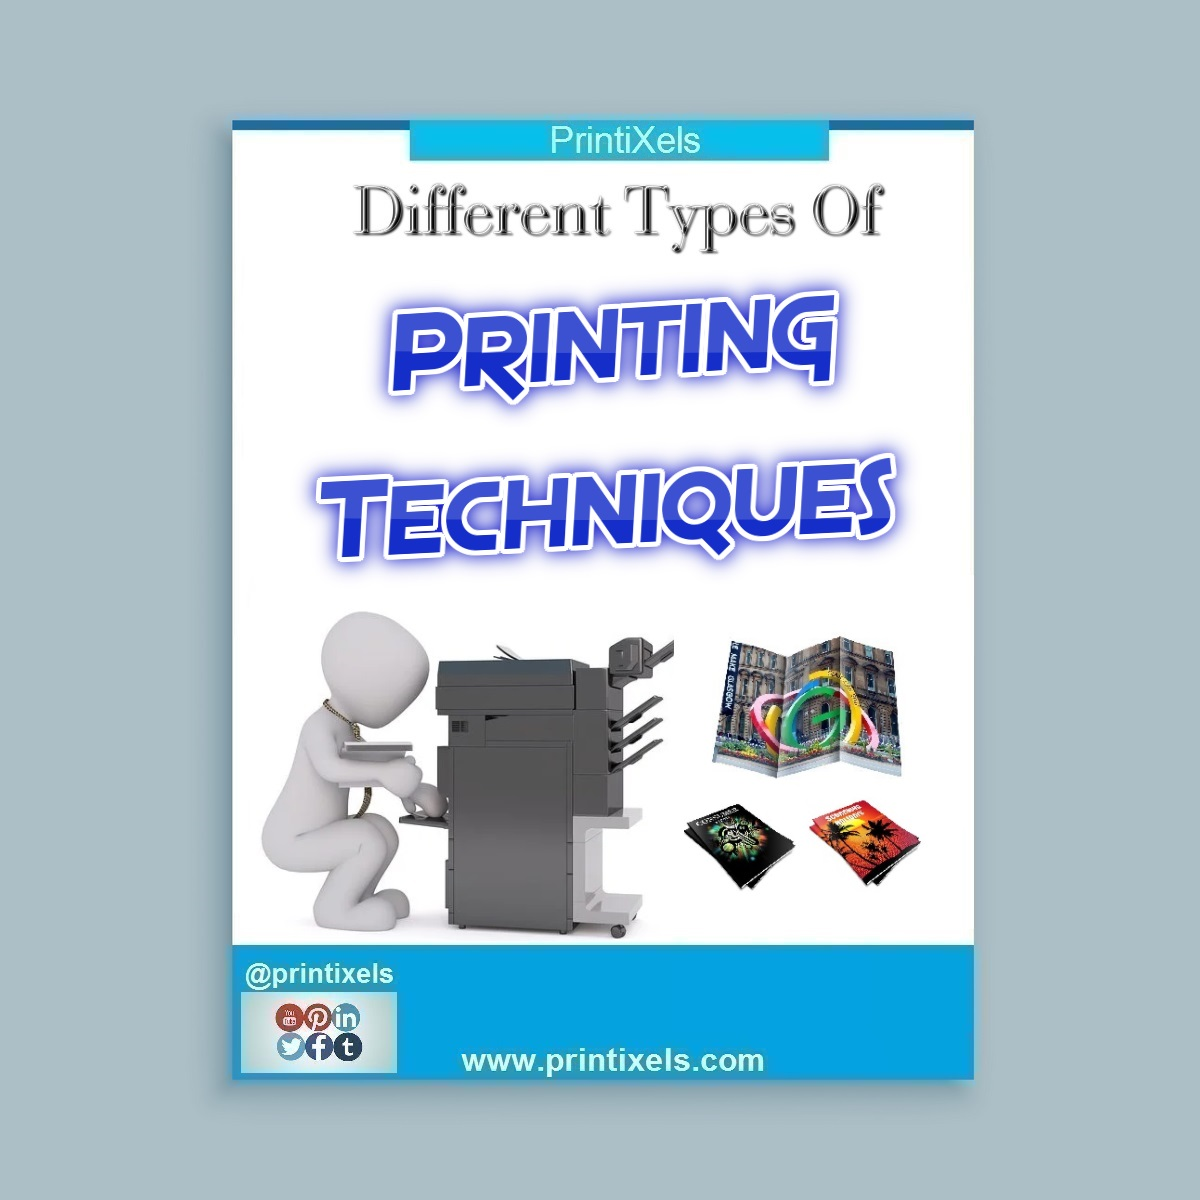 Different Types of Printing Techniques